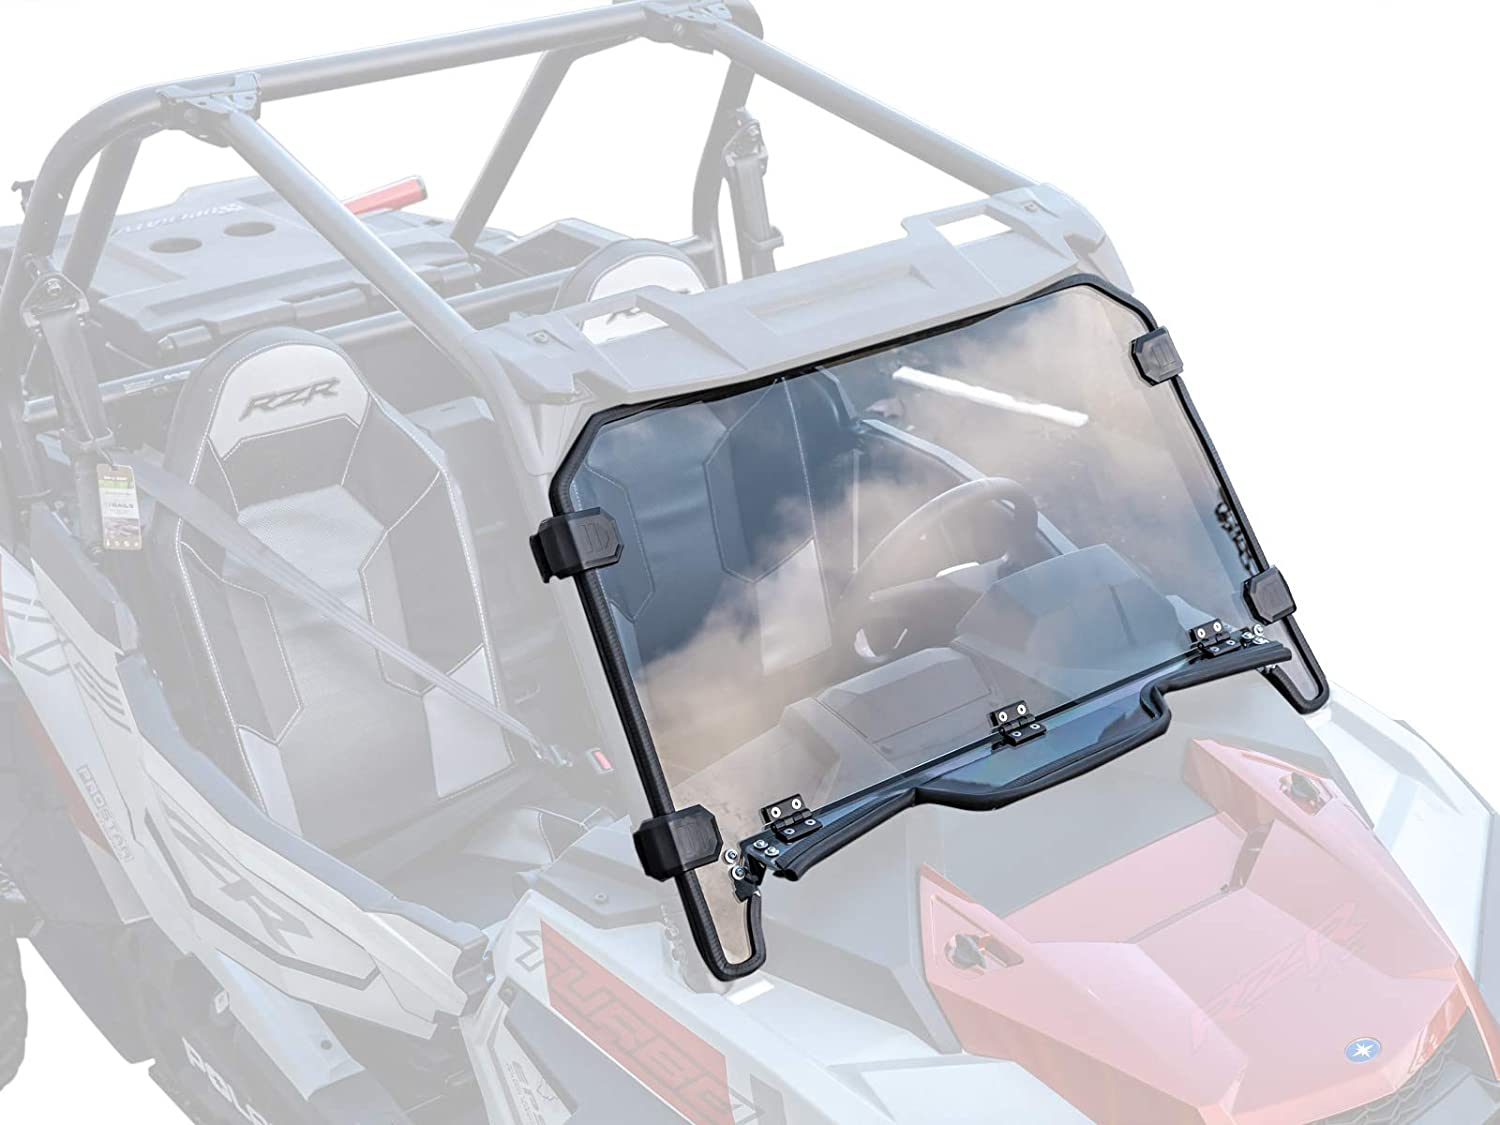 SuperATV Heavy Duty Standard Polycarbonate Vented Full Windshield for Polaris RZR XP Turbo 2019+ - Easy to Install!